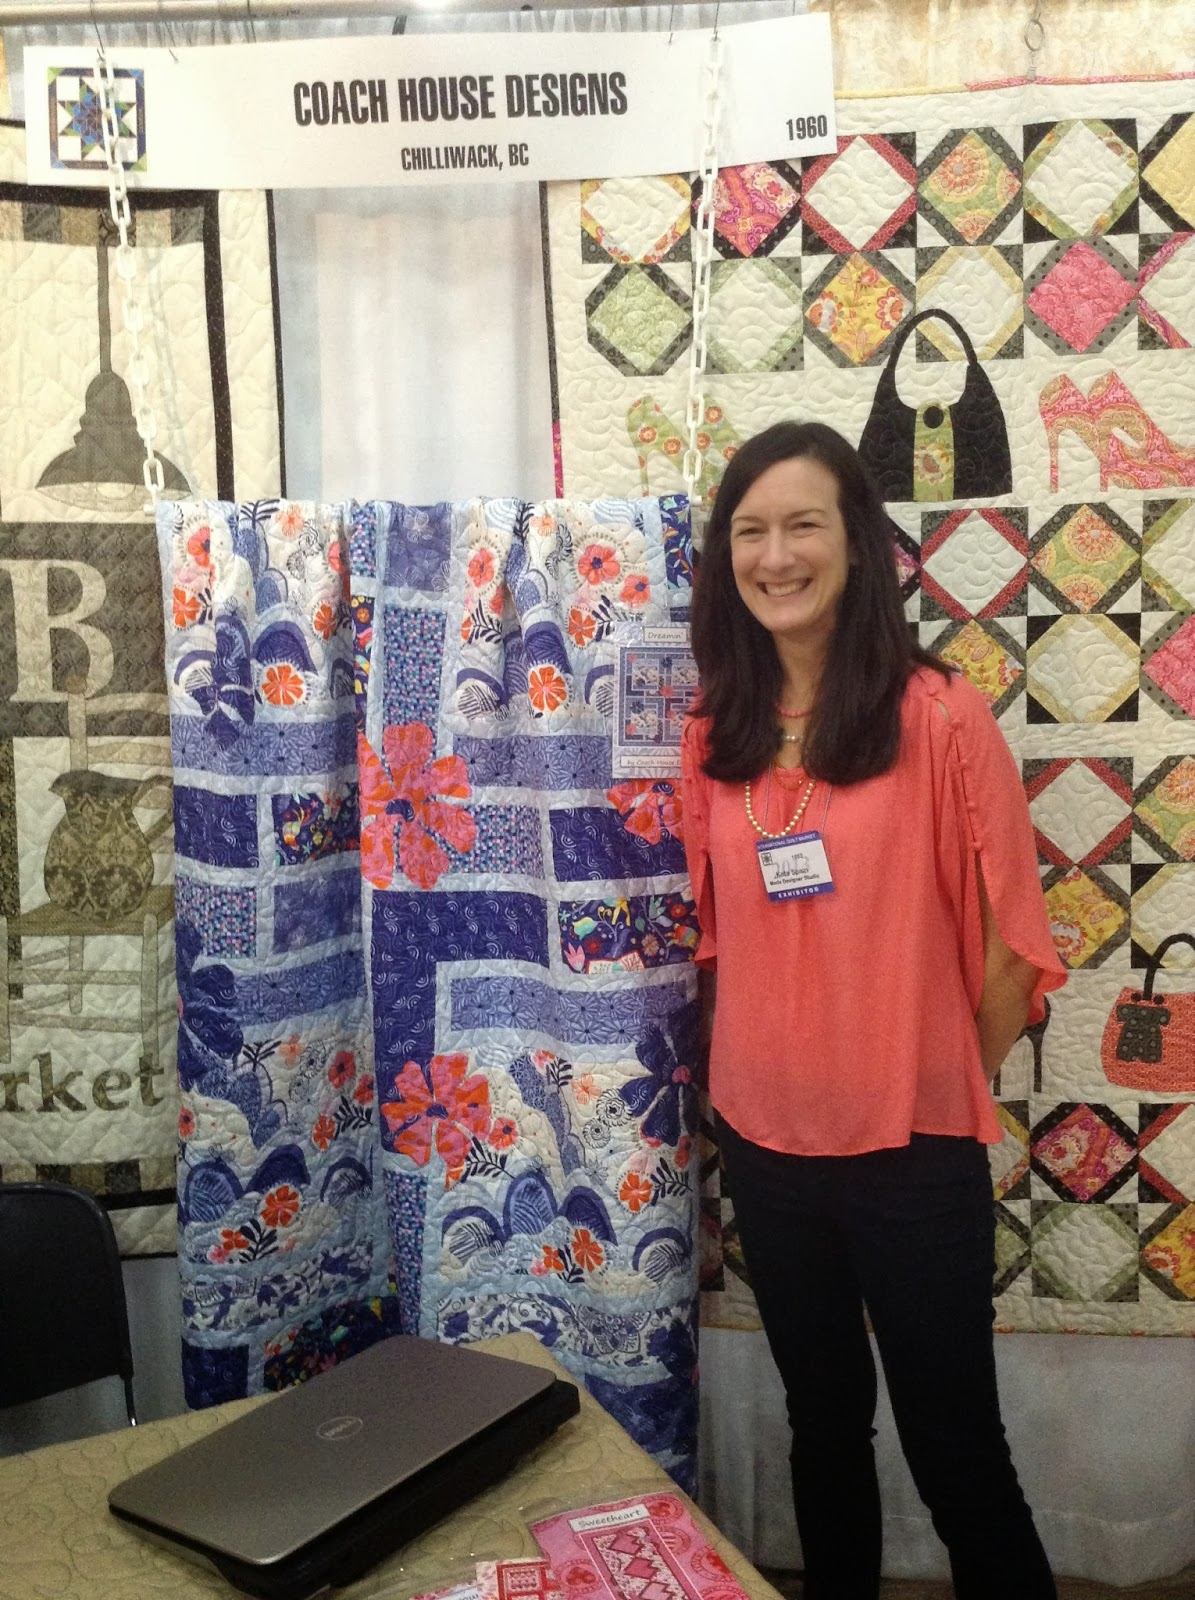 Barb Cherniwchan - Coach House Designs: My Quilt Market Friends and on muji house designs, chicken house designs, house house designs, coach nail designs, farm cottage designs, beautiful coach designs, american freedom designs, open air house designs, ralph lauren house designs, train depot designs, defensive house designs, disney house designs, lakeview house designs, woodstone designs, ford designs, coach promotions, school bus house designs, luxury row house designs, motor home house designs, boxcar house designs,